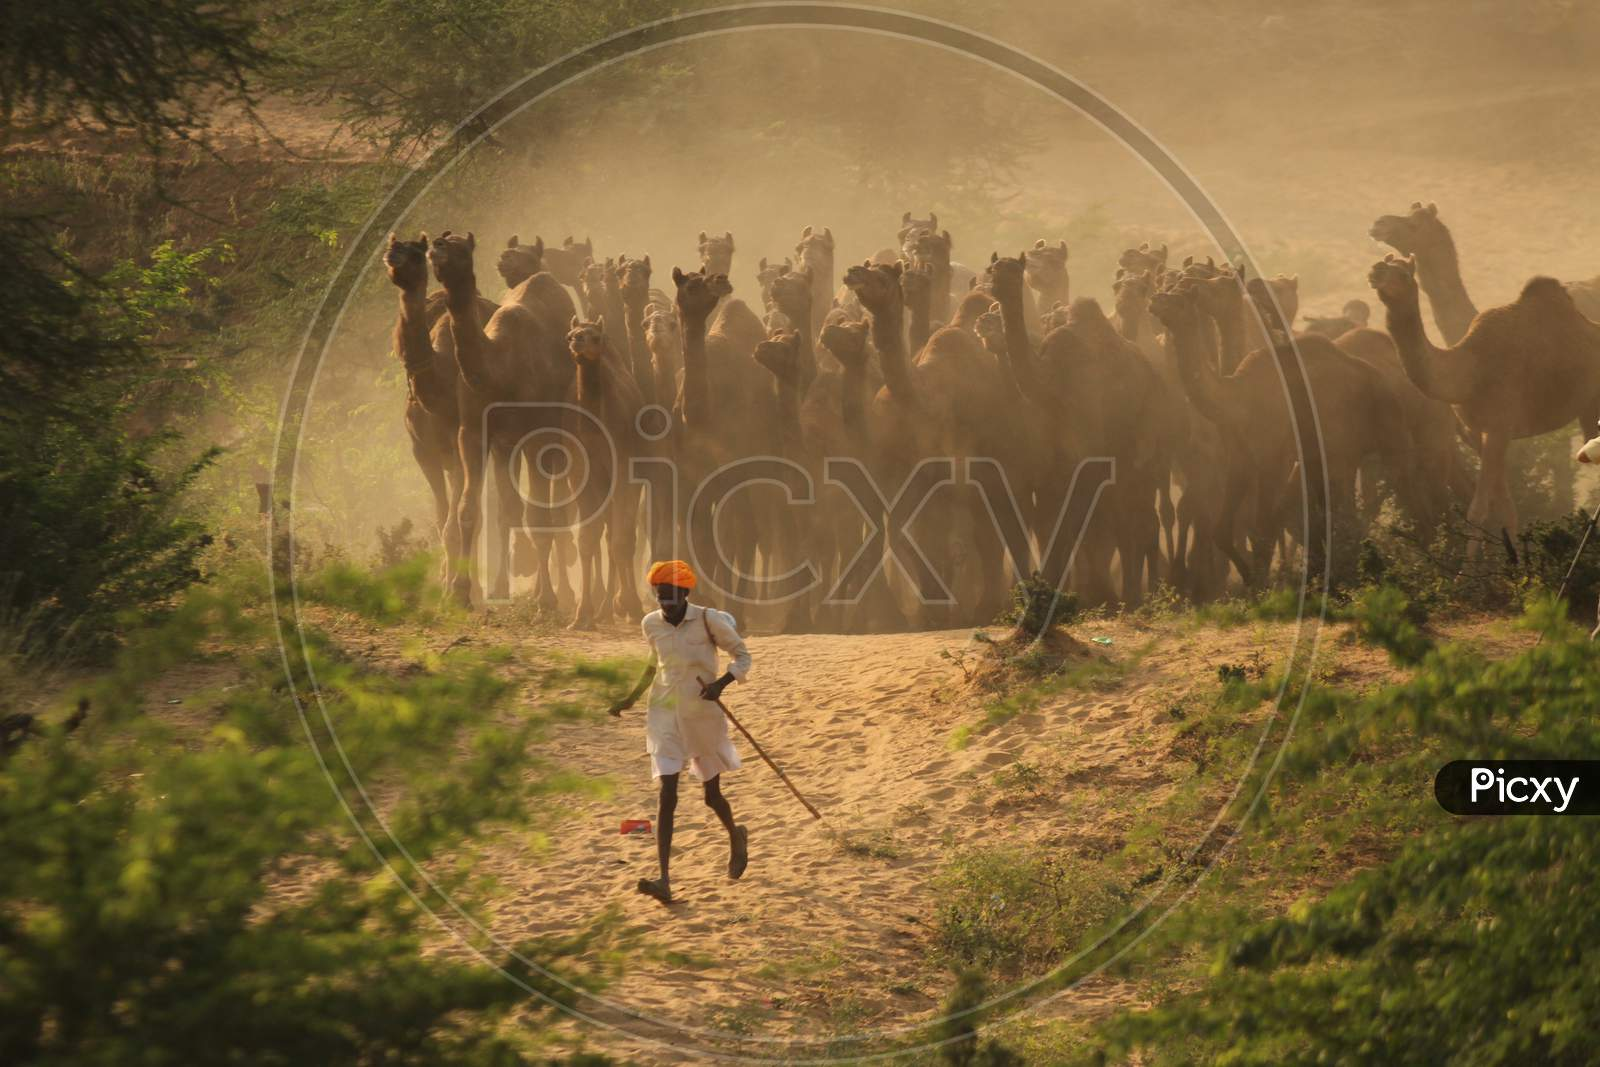 Pushkar Camel Fair In Pushkar In Rajasthan. Thousands Of Livestock Traders From The Region Come To The Traditional Camel Fair Where Livestock, Mainly Camels, Are Traded. This Annual Five-Day Camel And Livestock Fair Is One Of The World'S Largest Camel Fairs.